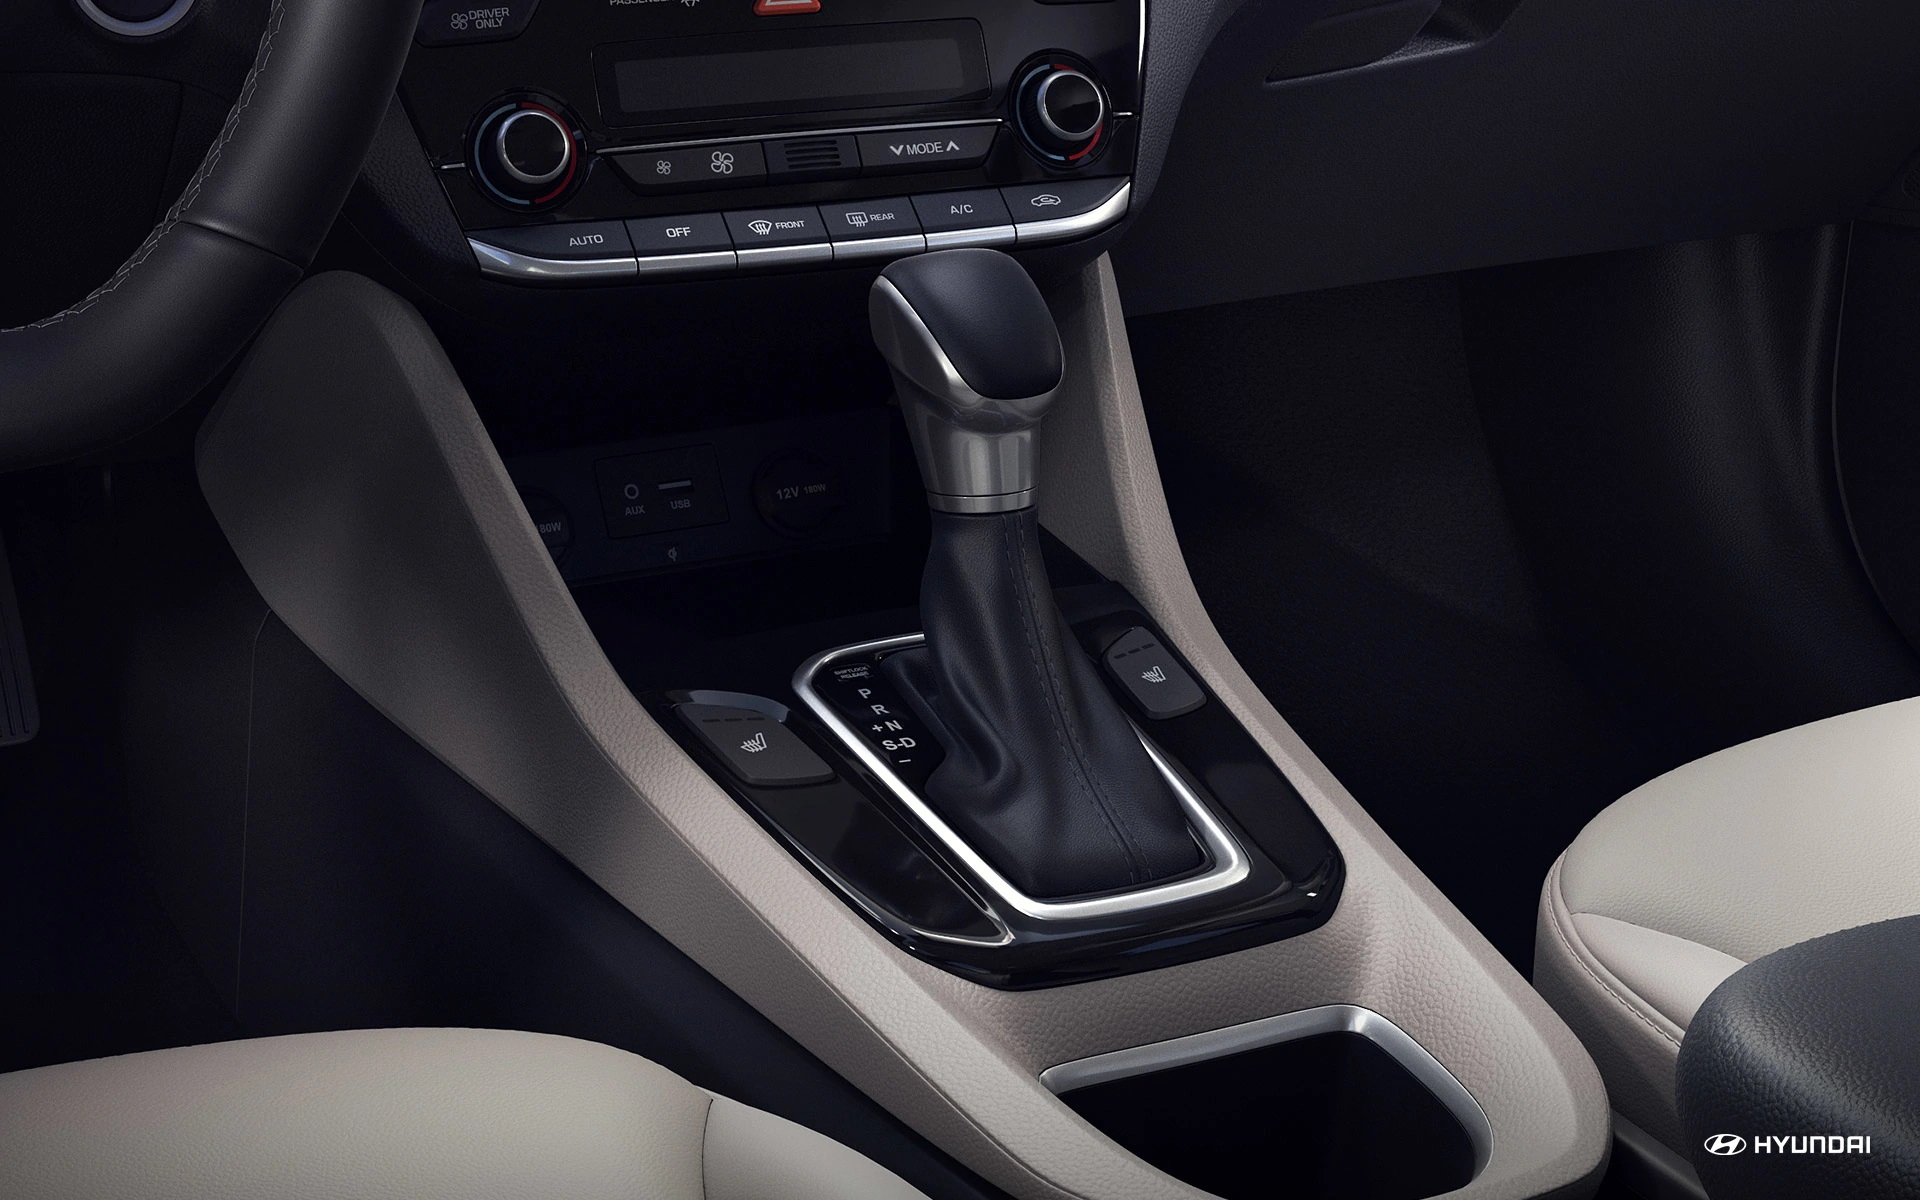 2019 Ioniq Hybrid Shift Knob